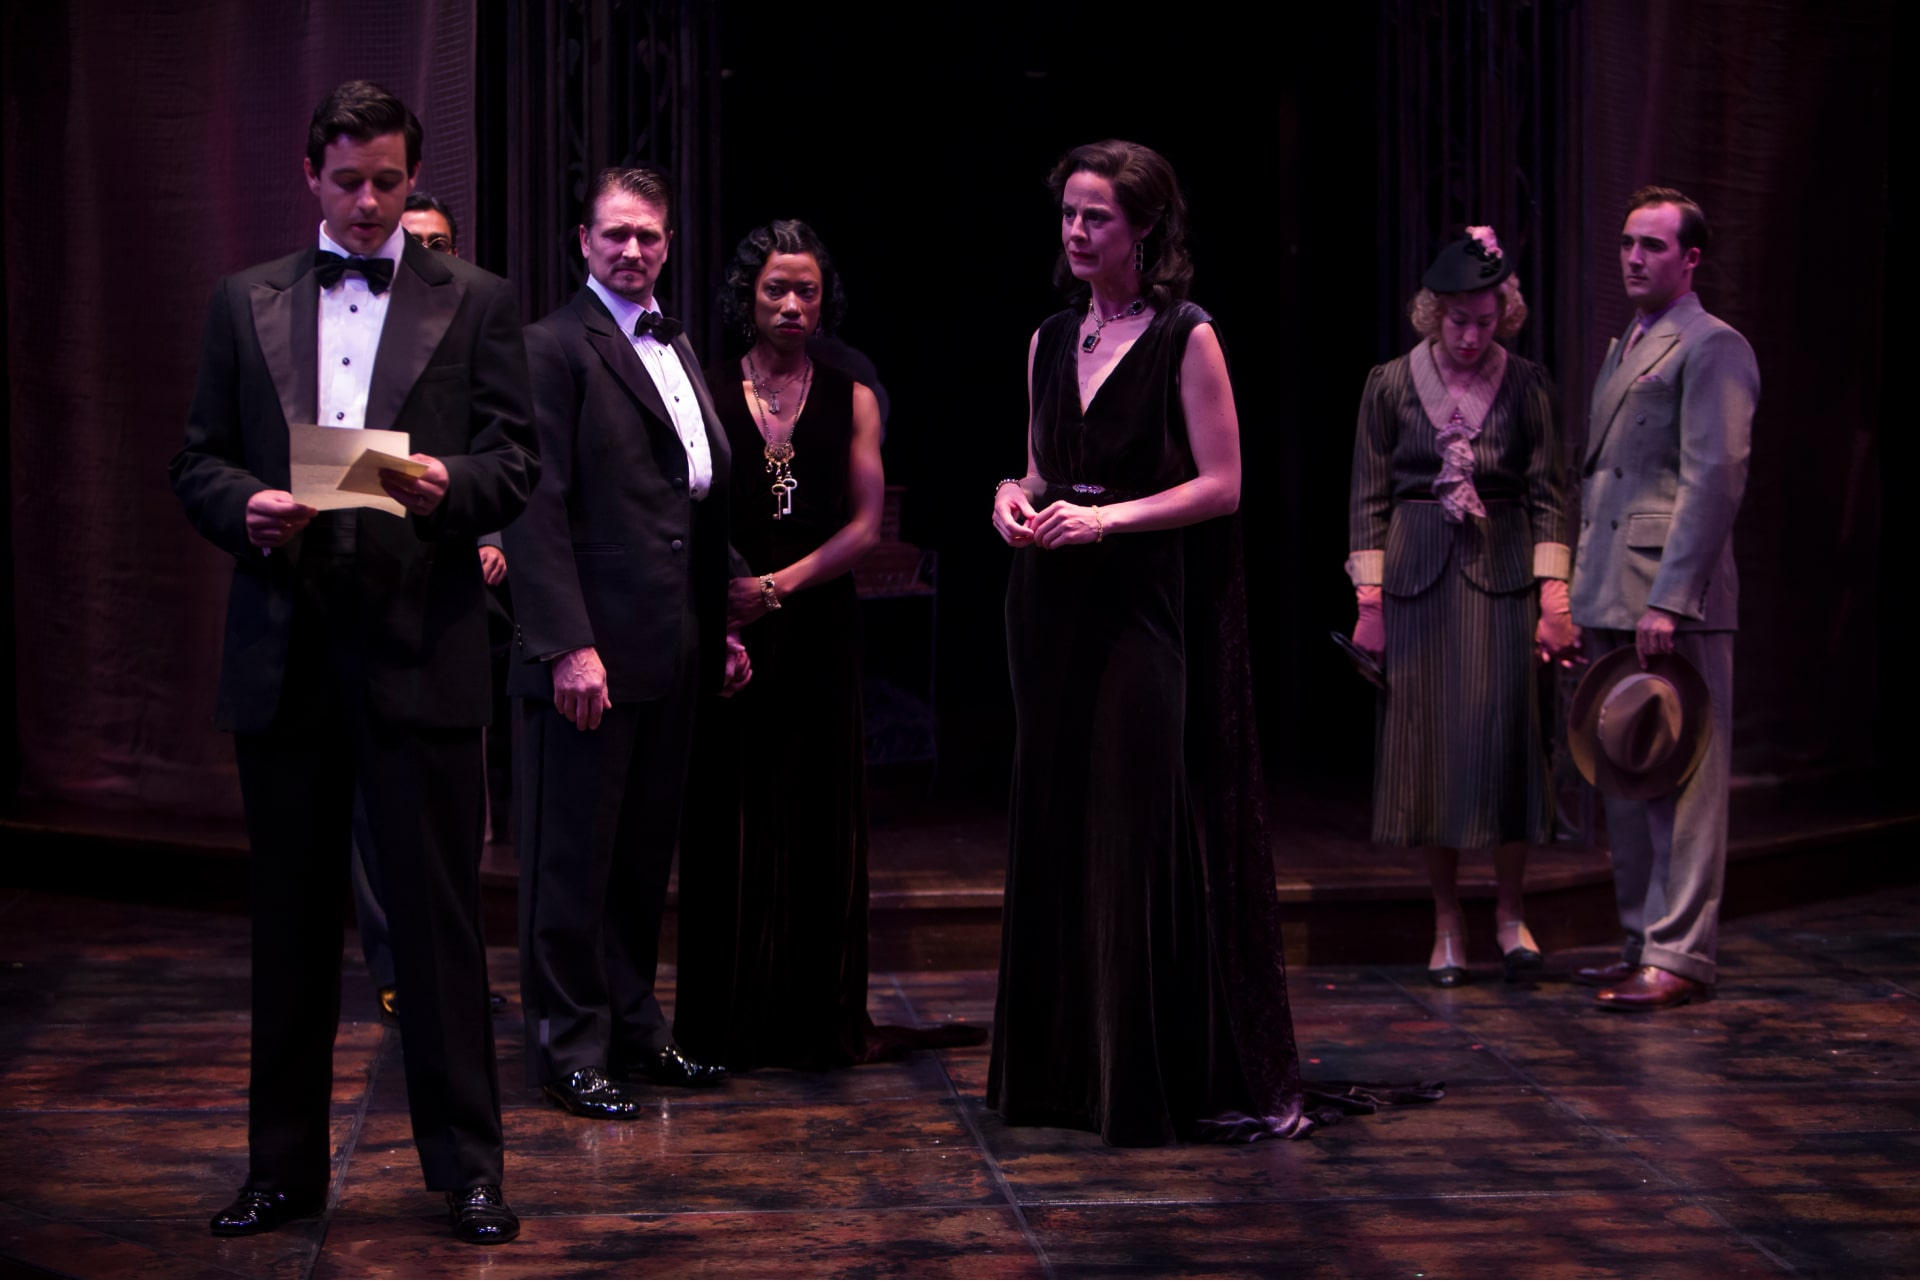 Man in dinner jacket reads letter to woman in black gown and others under dappled lavender light on bare stage.